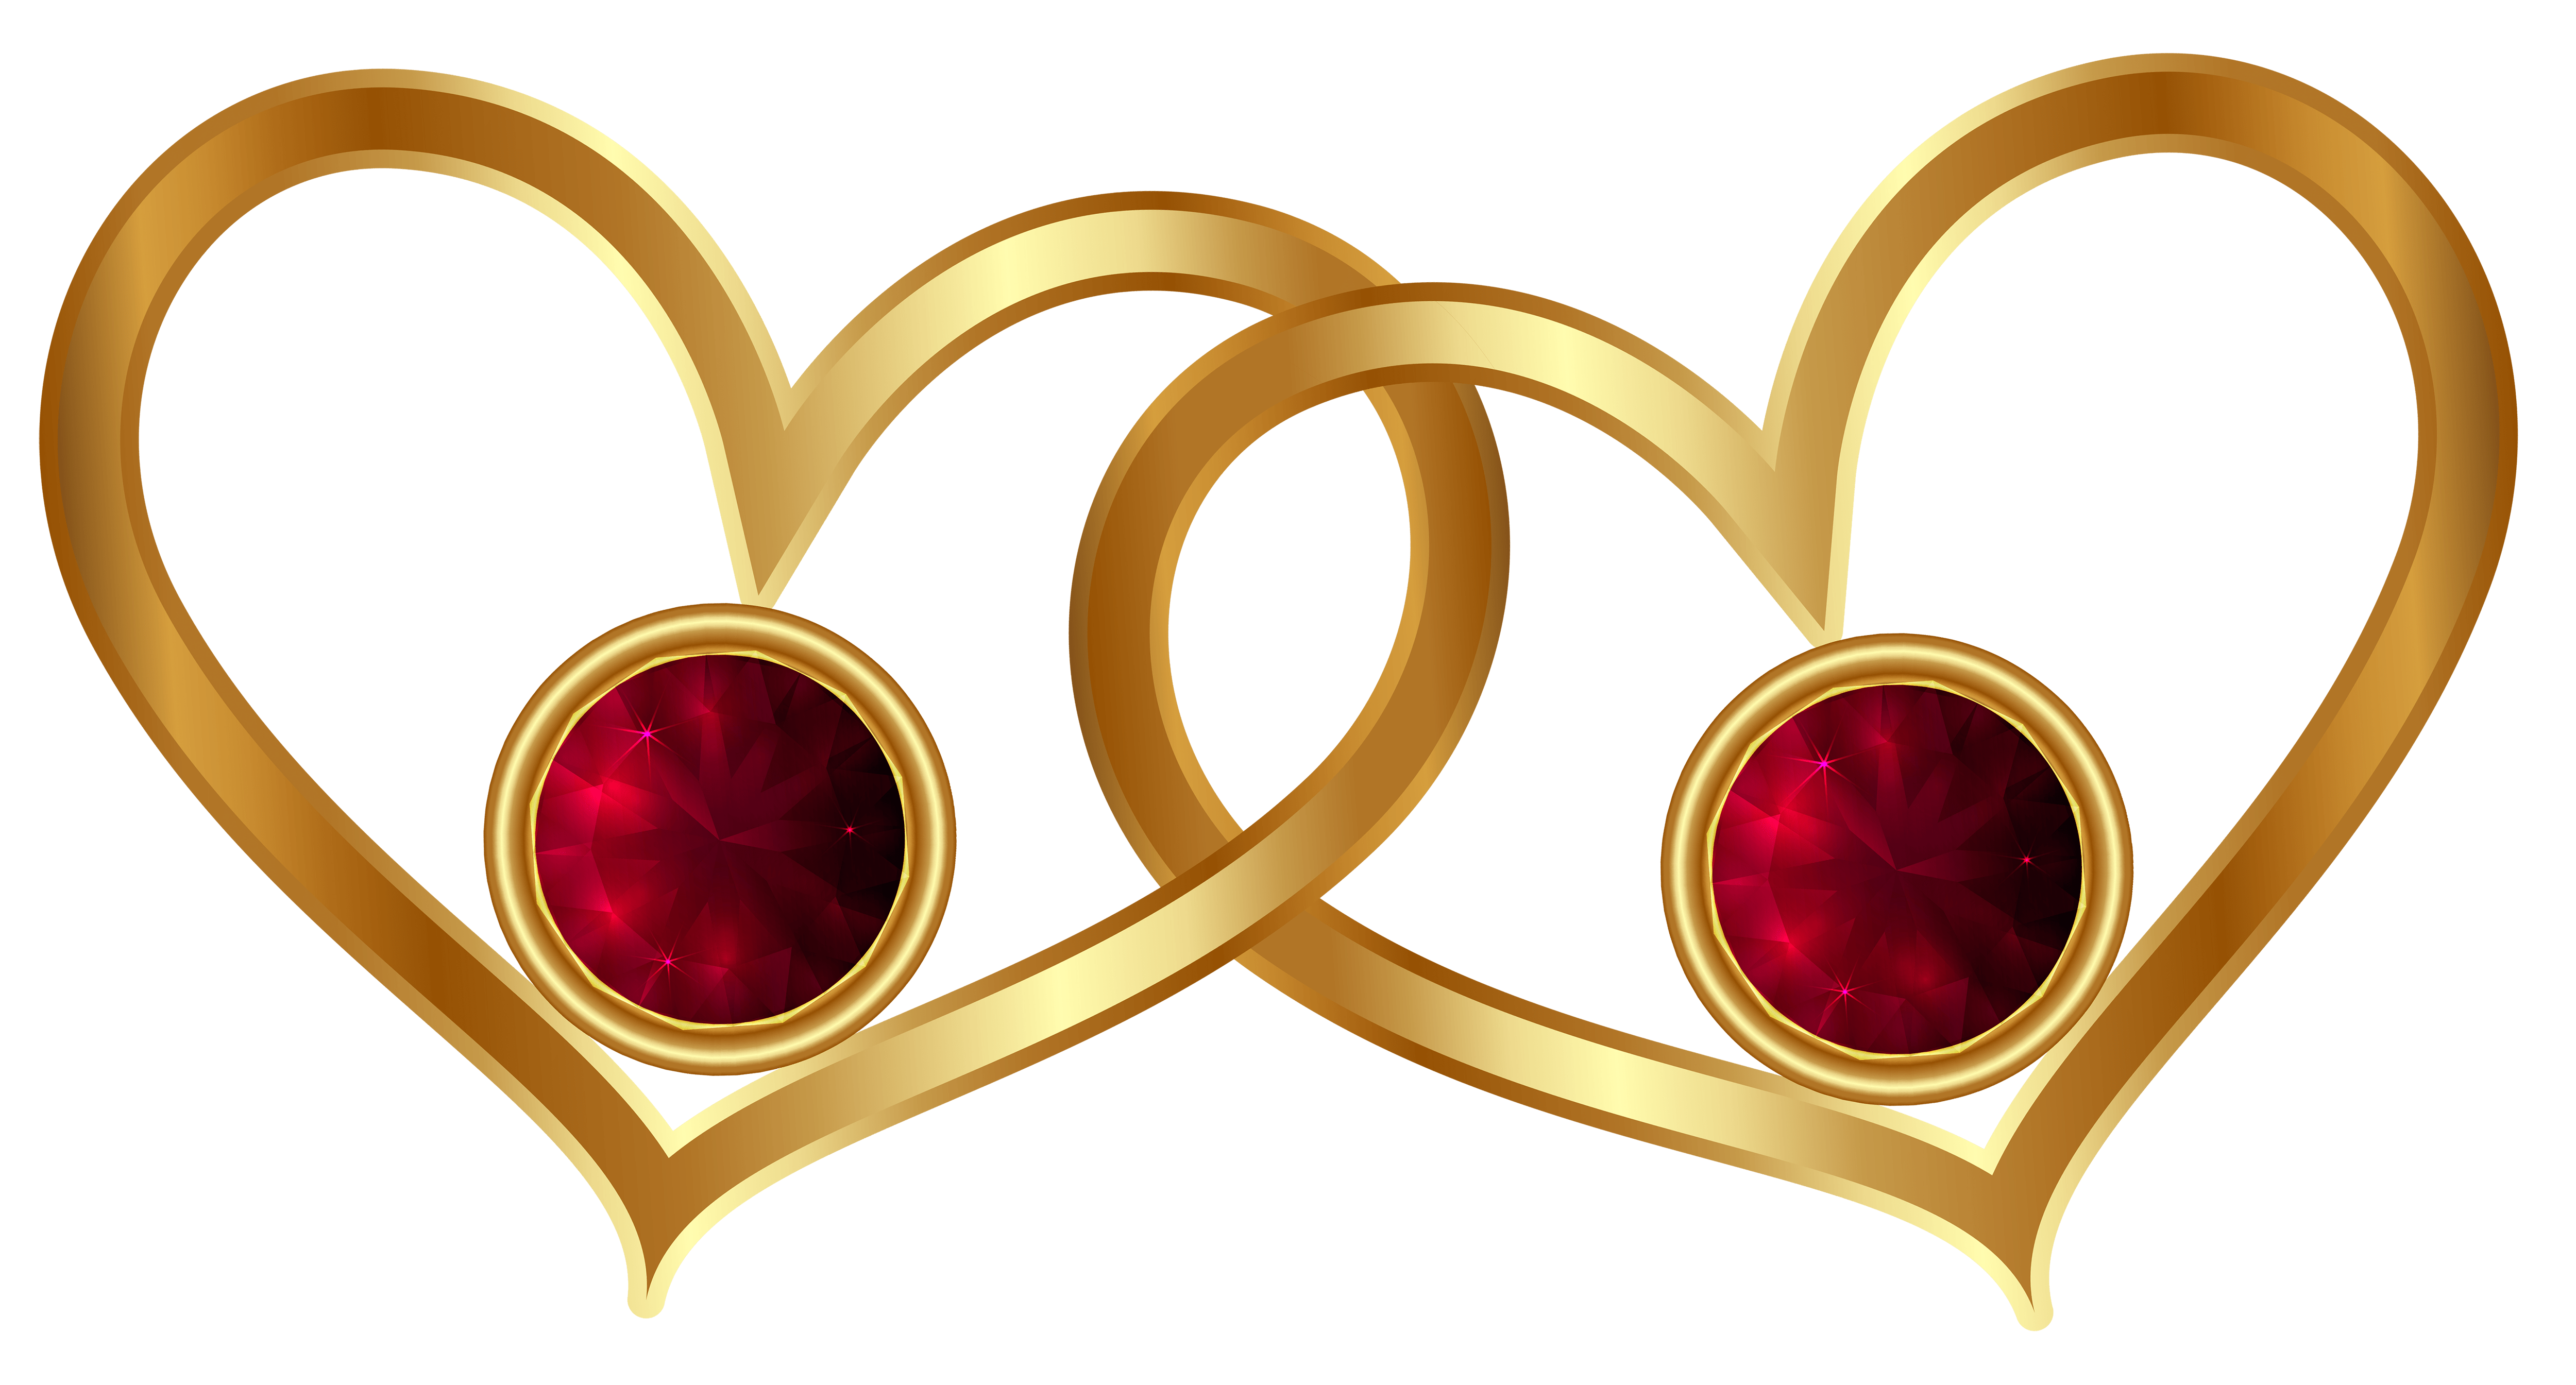 Diamonds clipart red diamond. Golden hearts with png